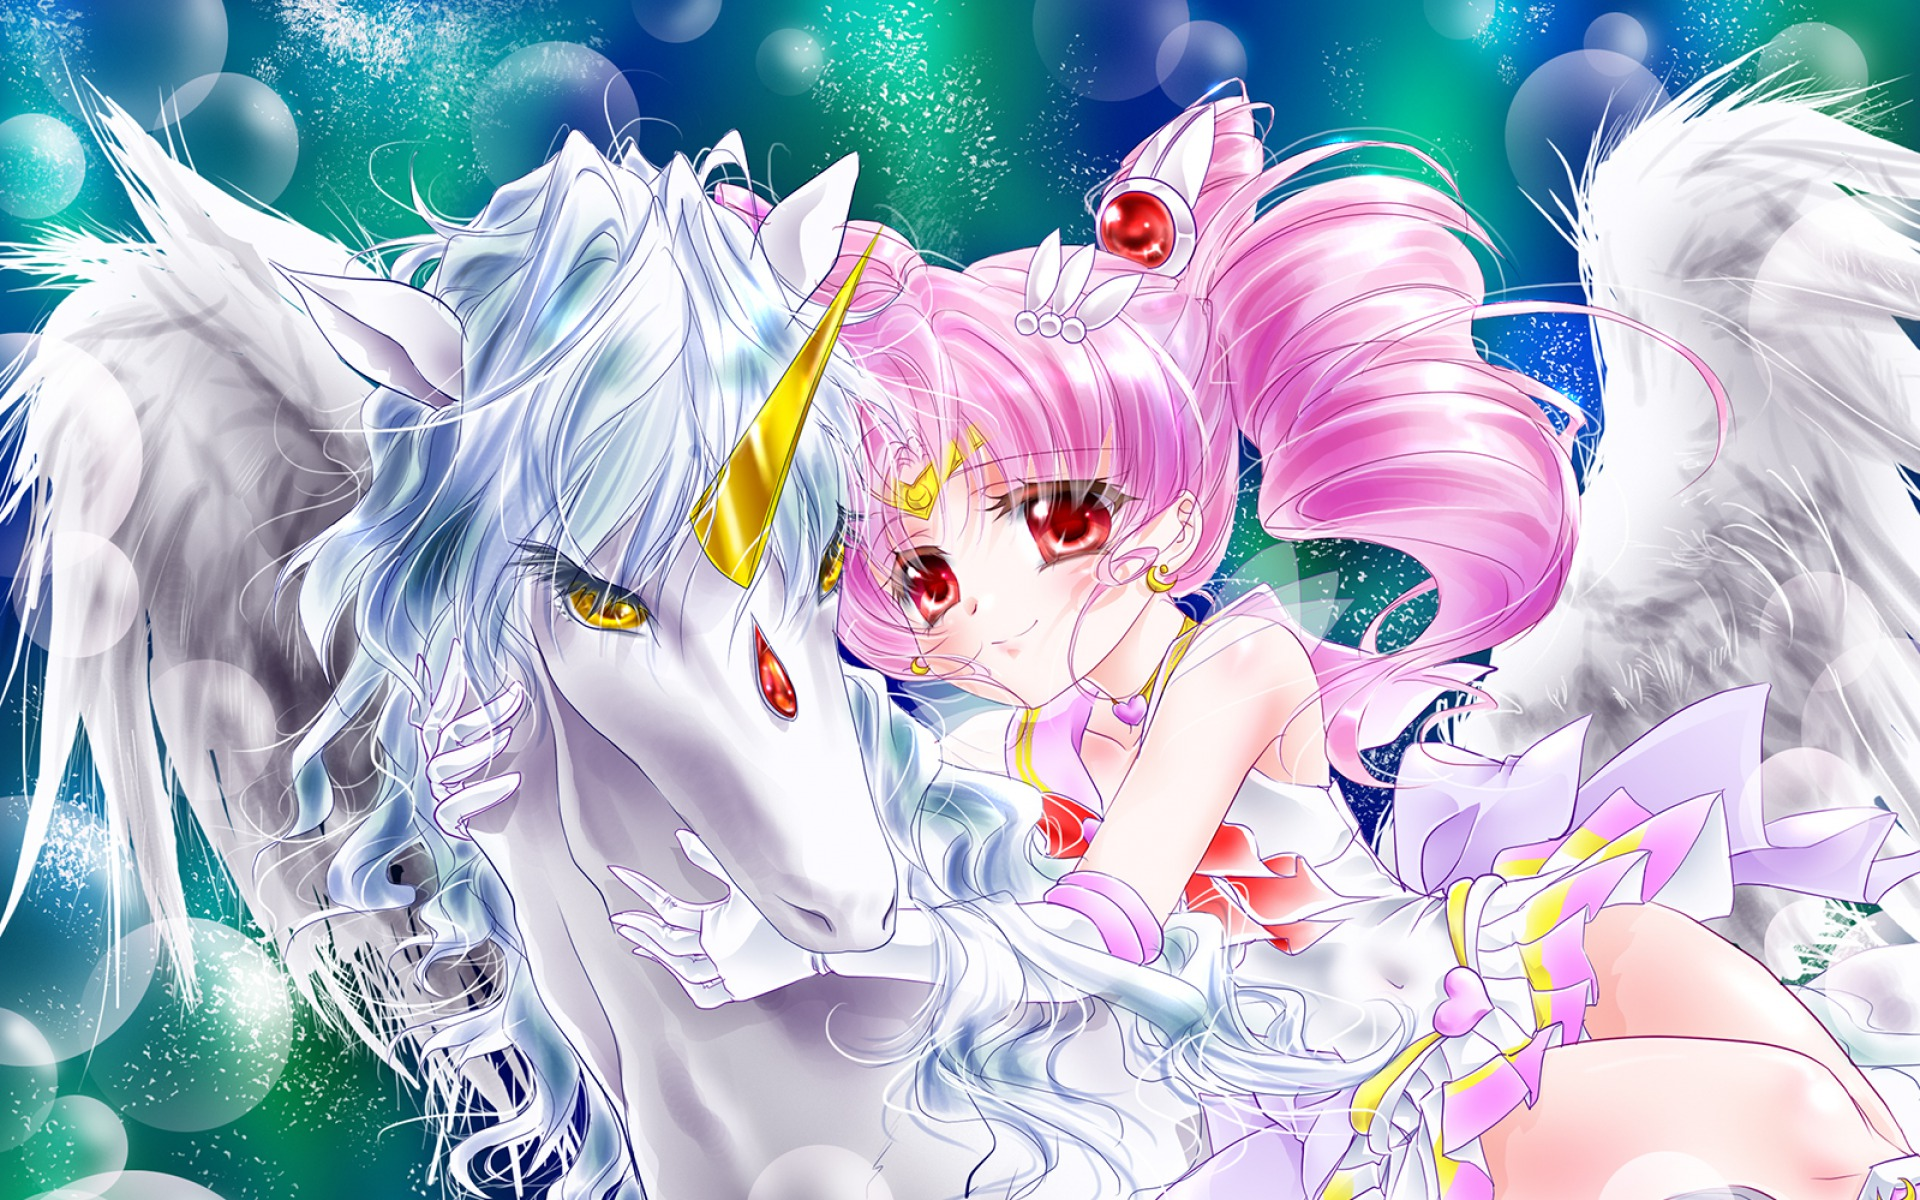 Unicorn pictures 40 high quality unicorn wallpapers full hd unicorn - Anime Unicorn Wallpaper High Definition High Quality Widescreen